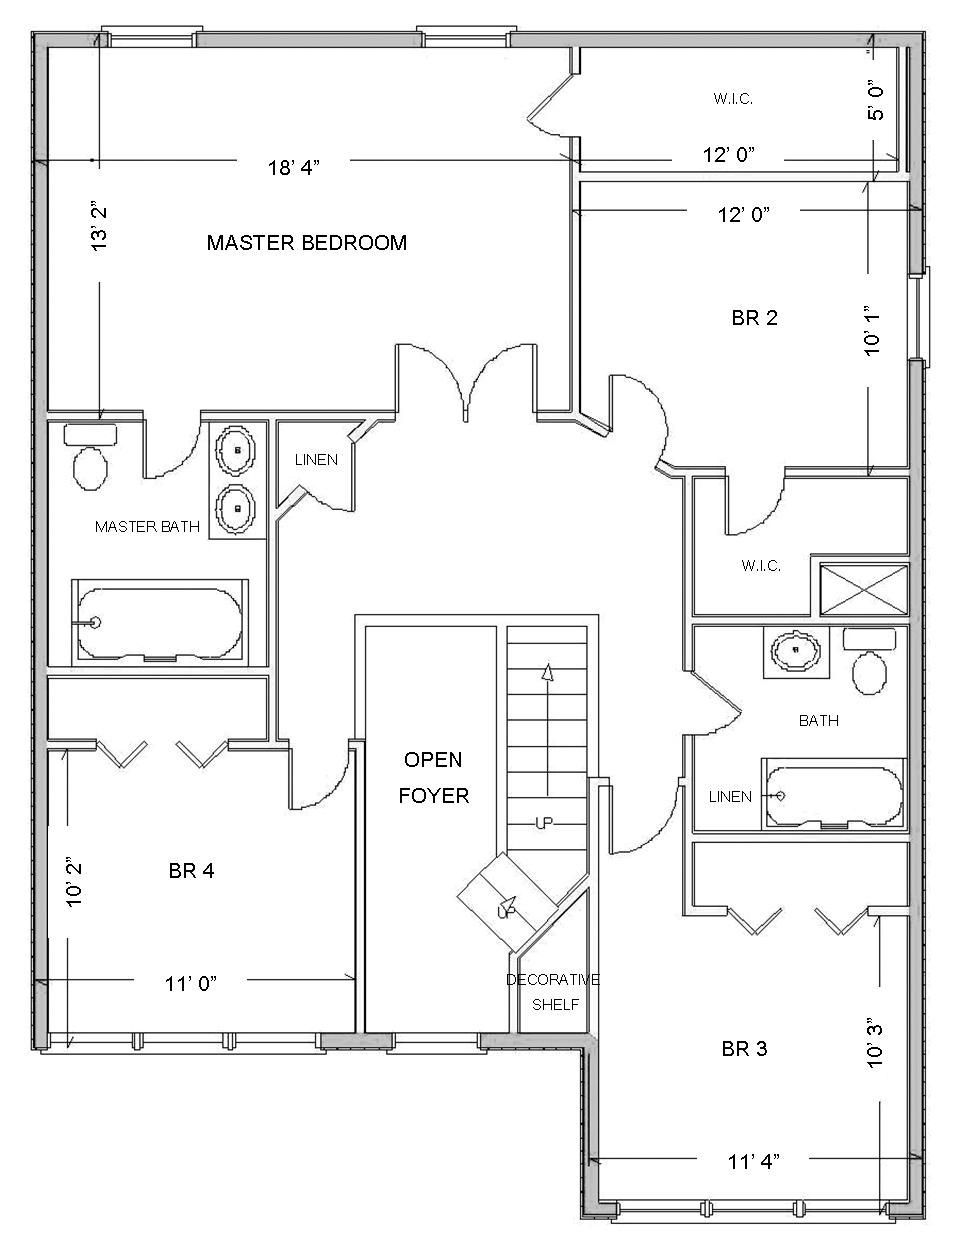 002 Frightening Free Floor Plan Template Concept  Excel Home House SampleFull